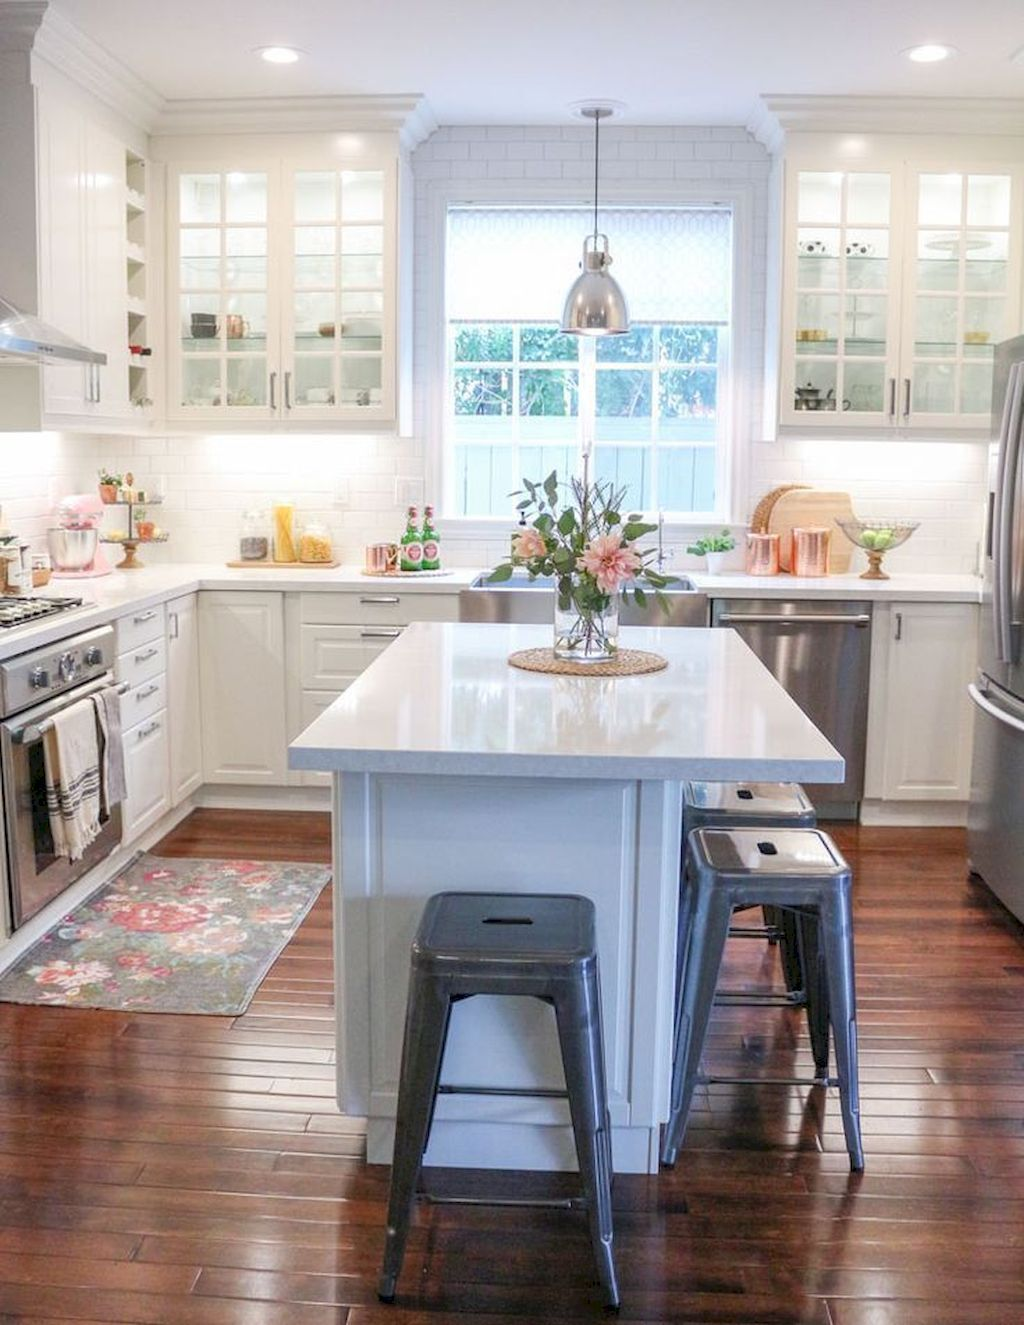 Selecting The Ideal Design For Your Kitchen Kitchen Remodel